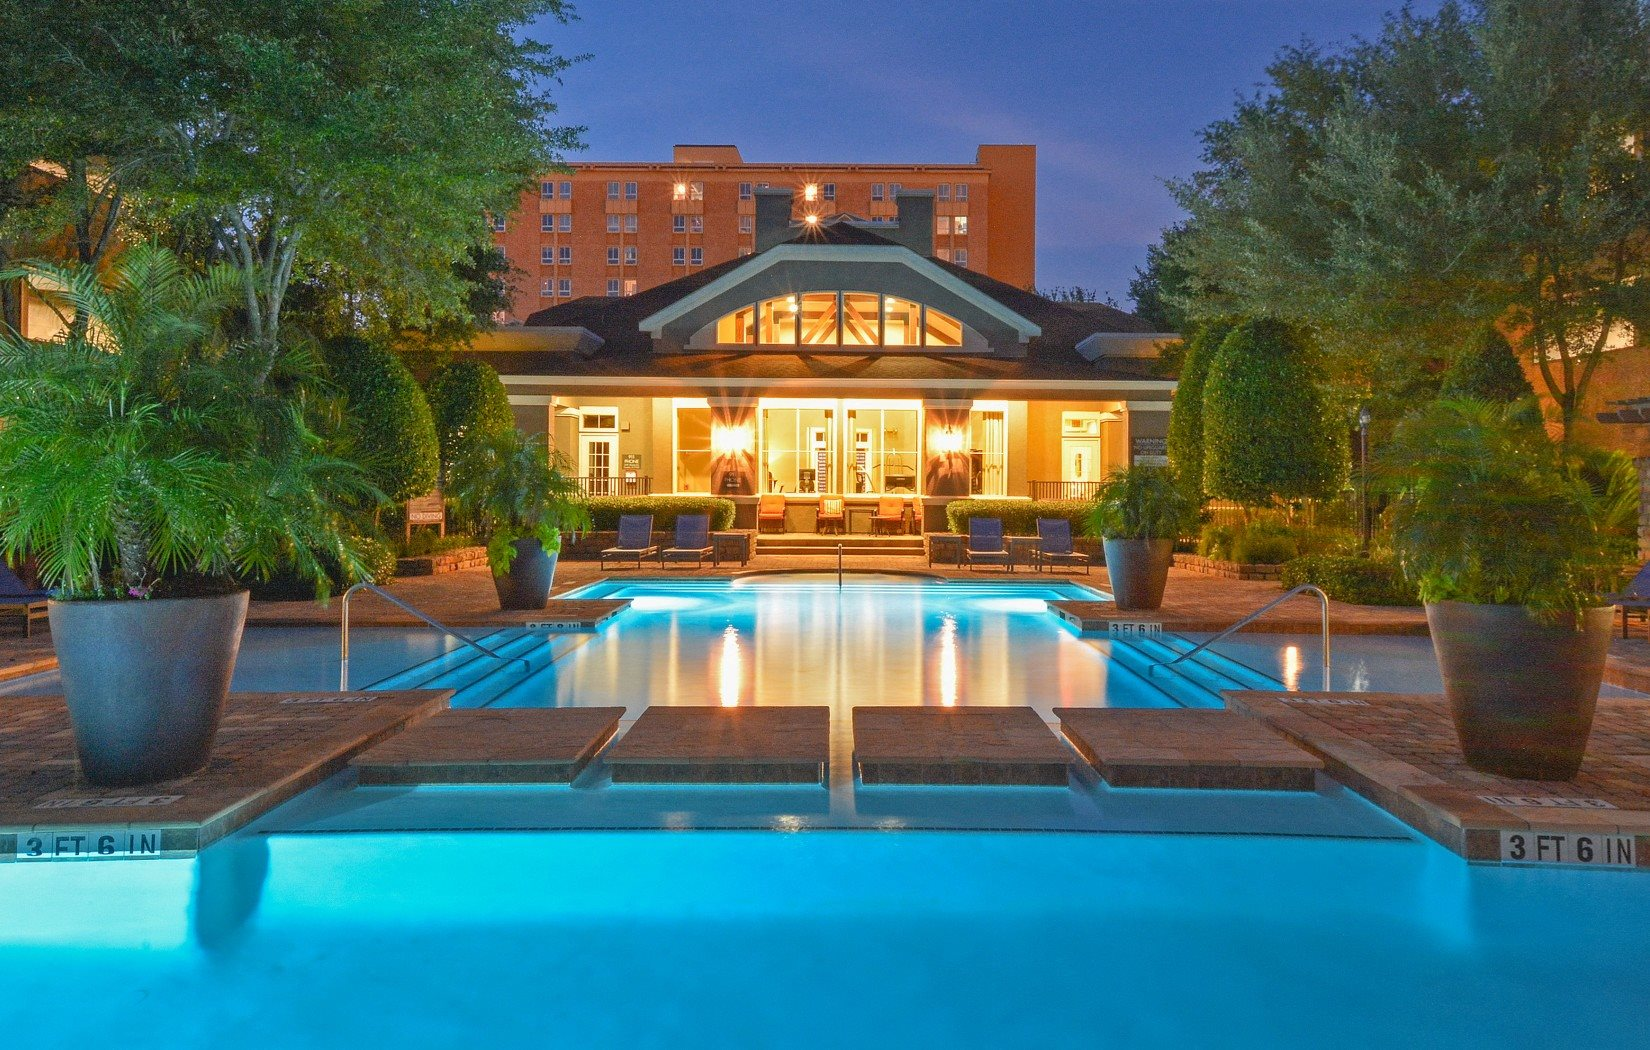 pristine pool with water geyser | Villas at Hermann Park Apartments in Houston, TX